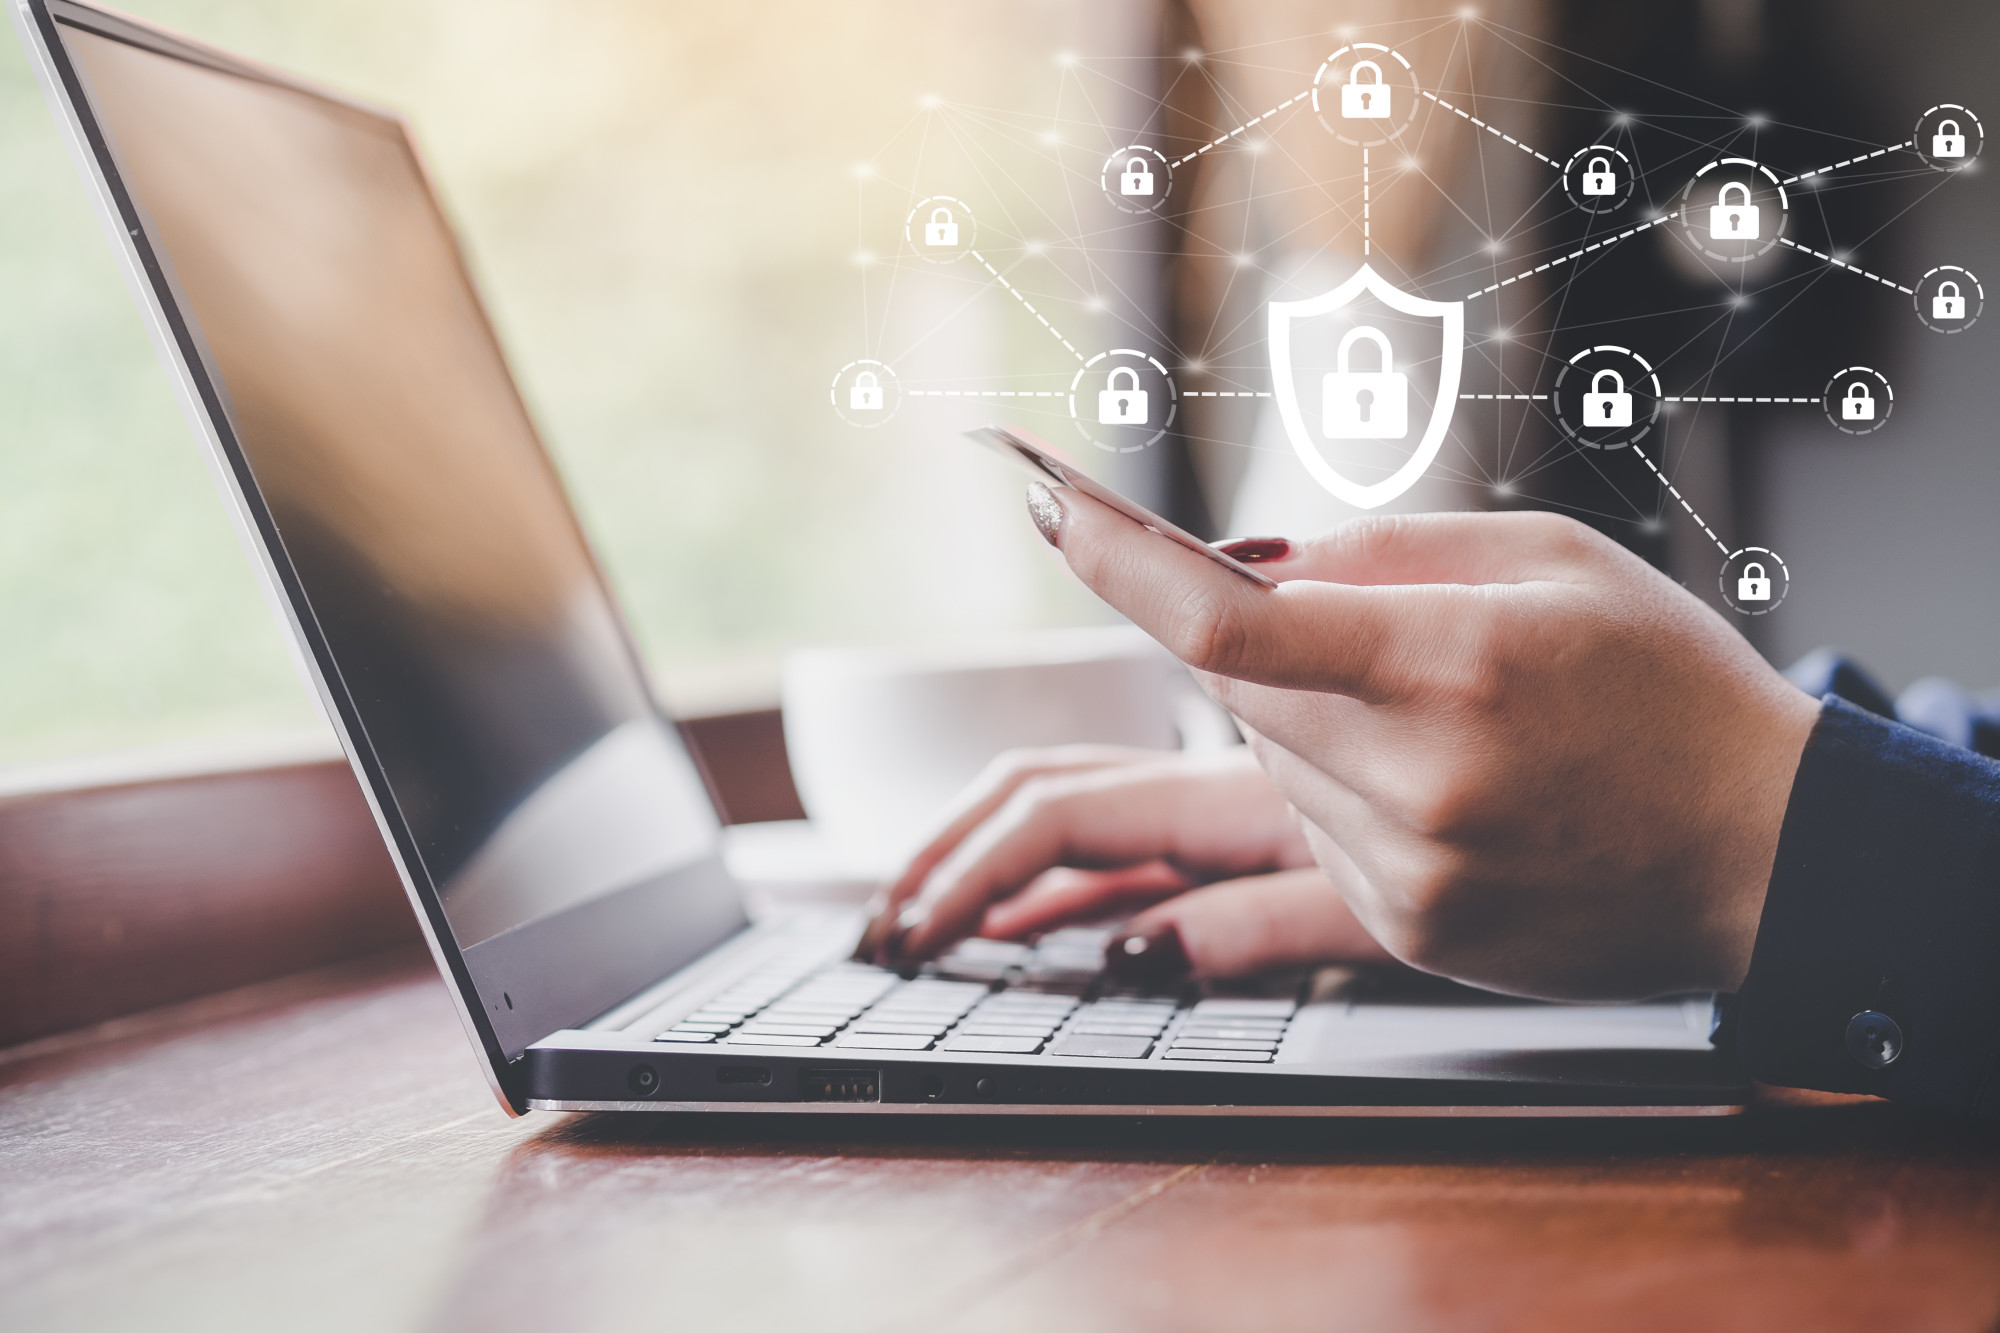 Internet Security - What You Need To Know